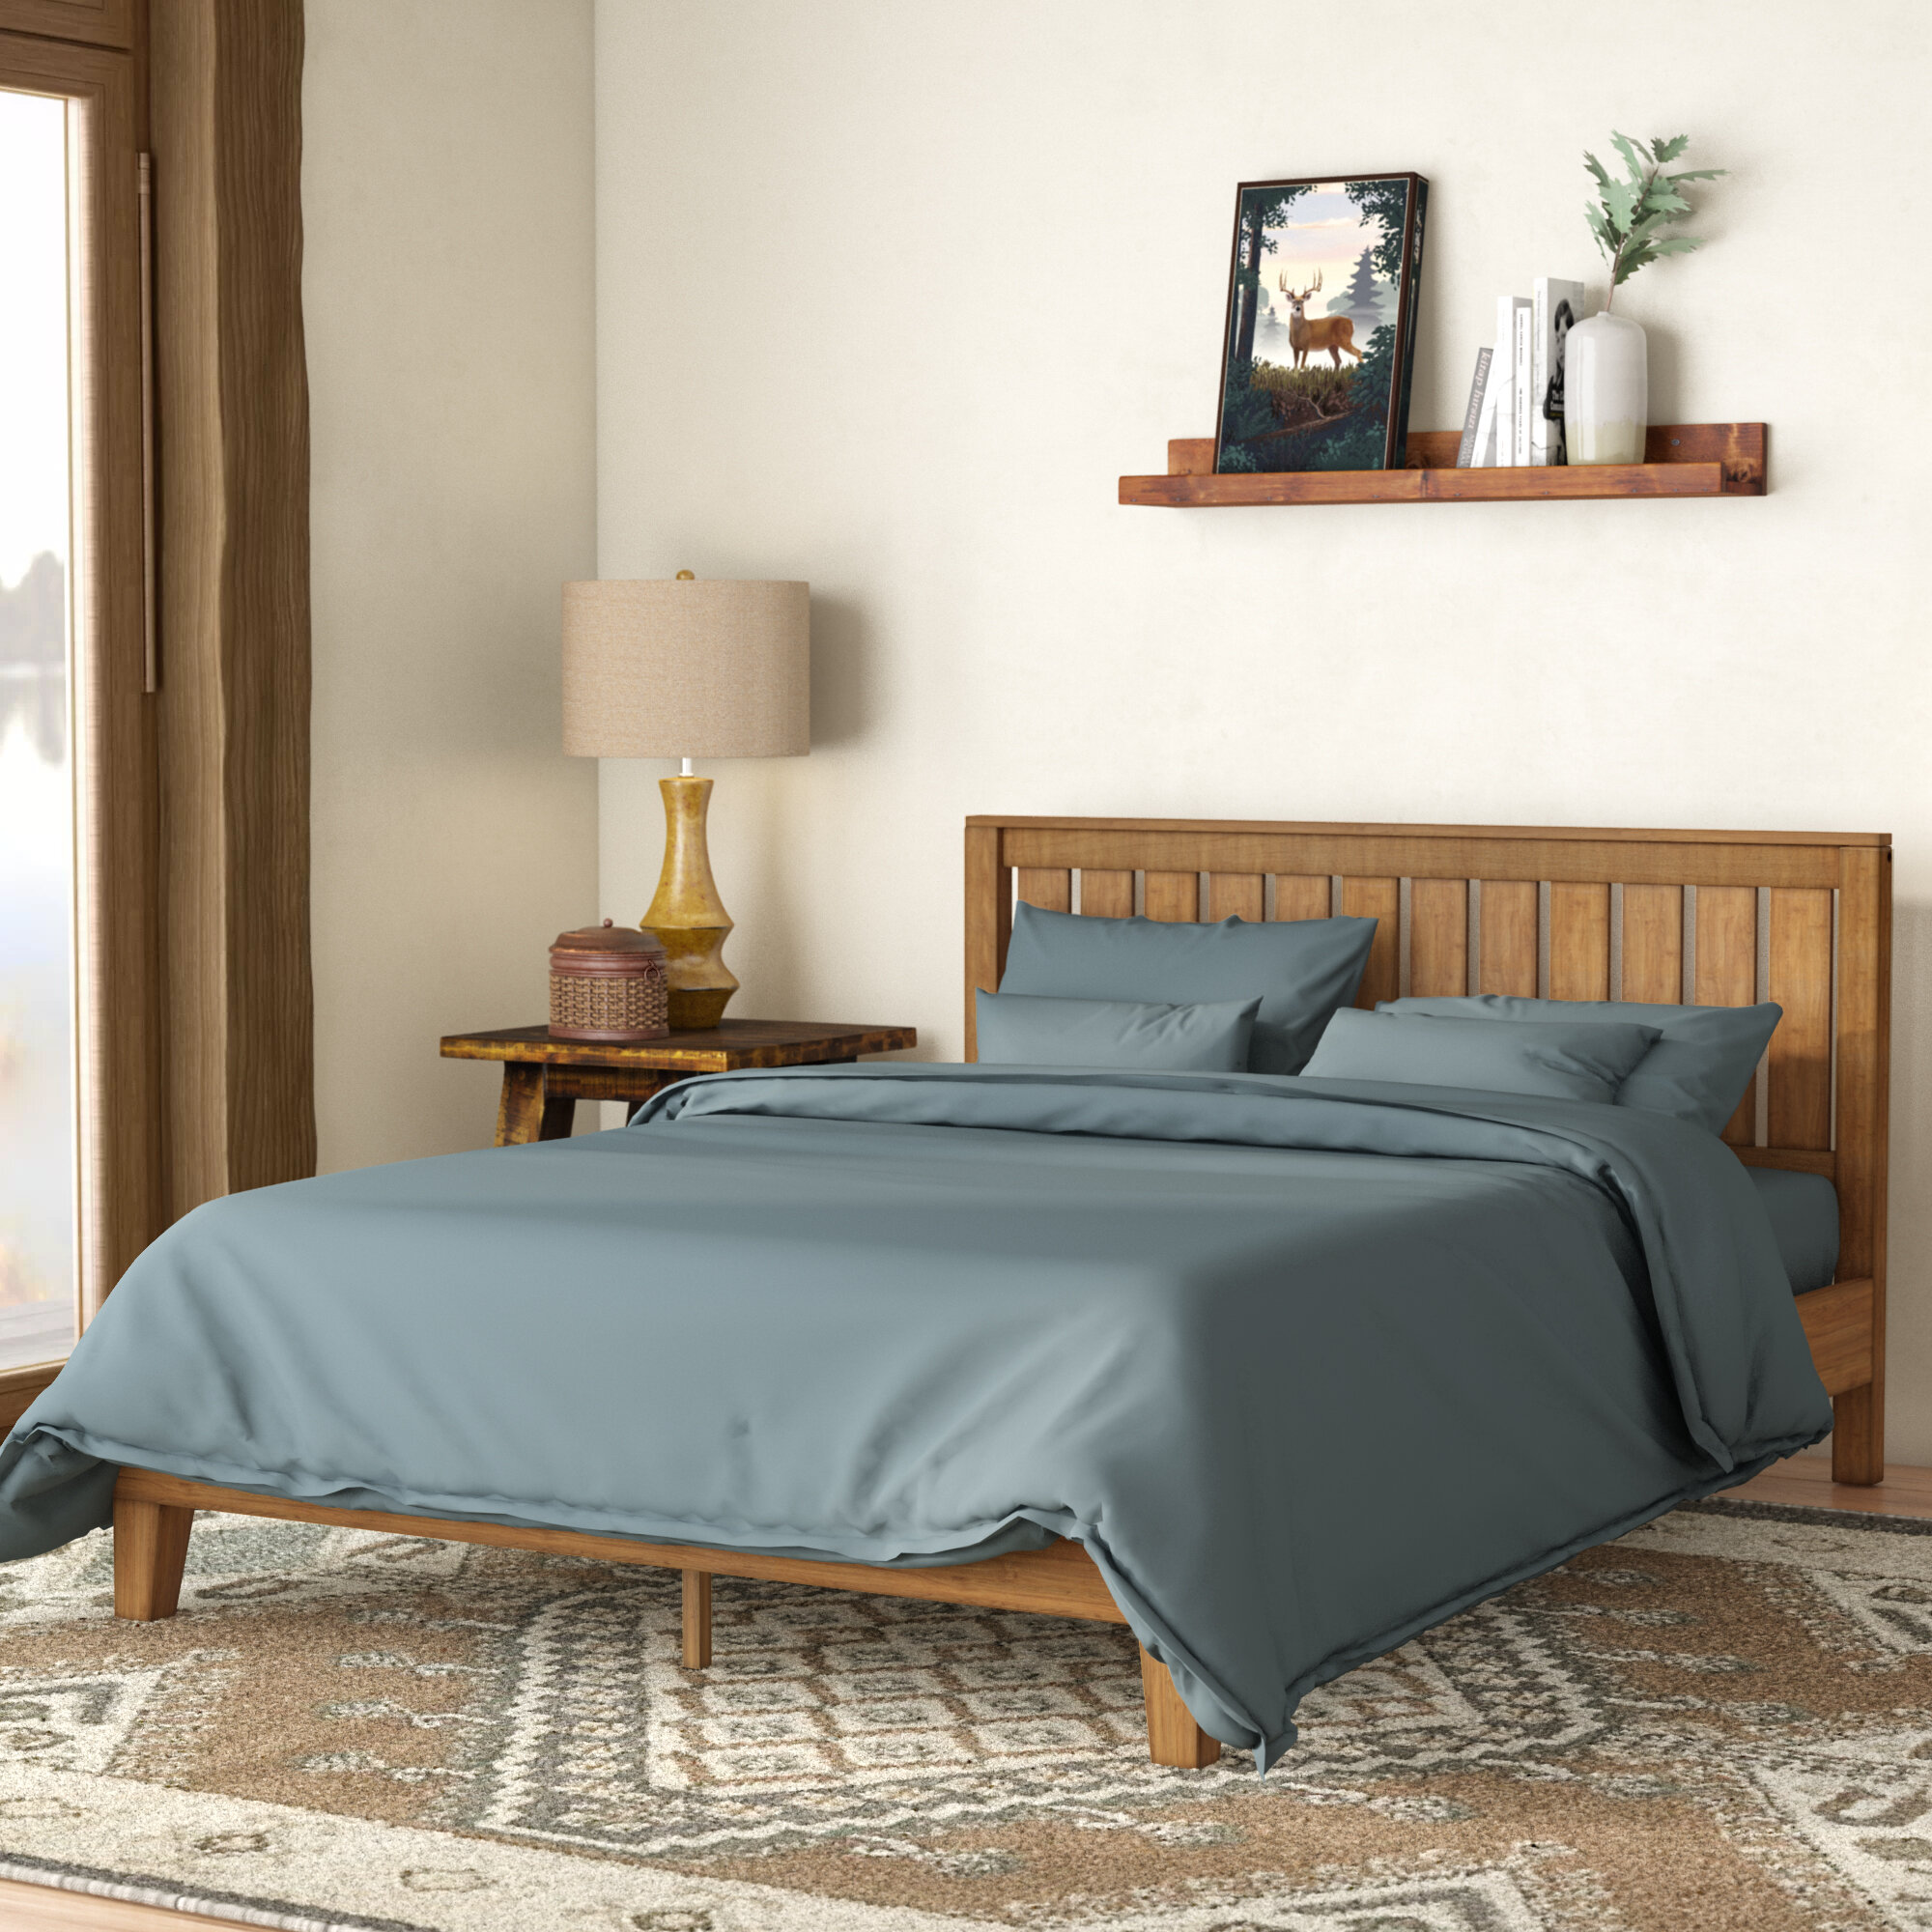 Rustic Beds Frames Free Shipping Over 35 Wayfair